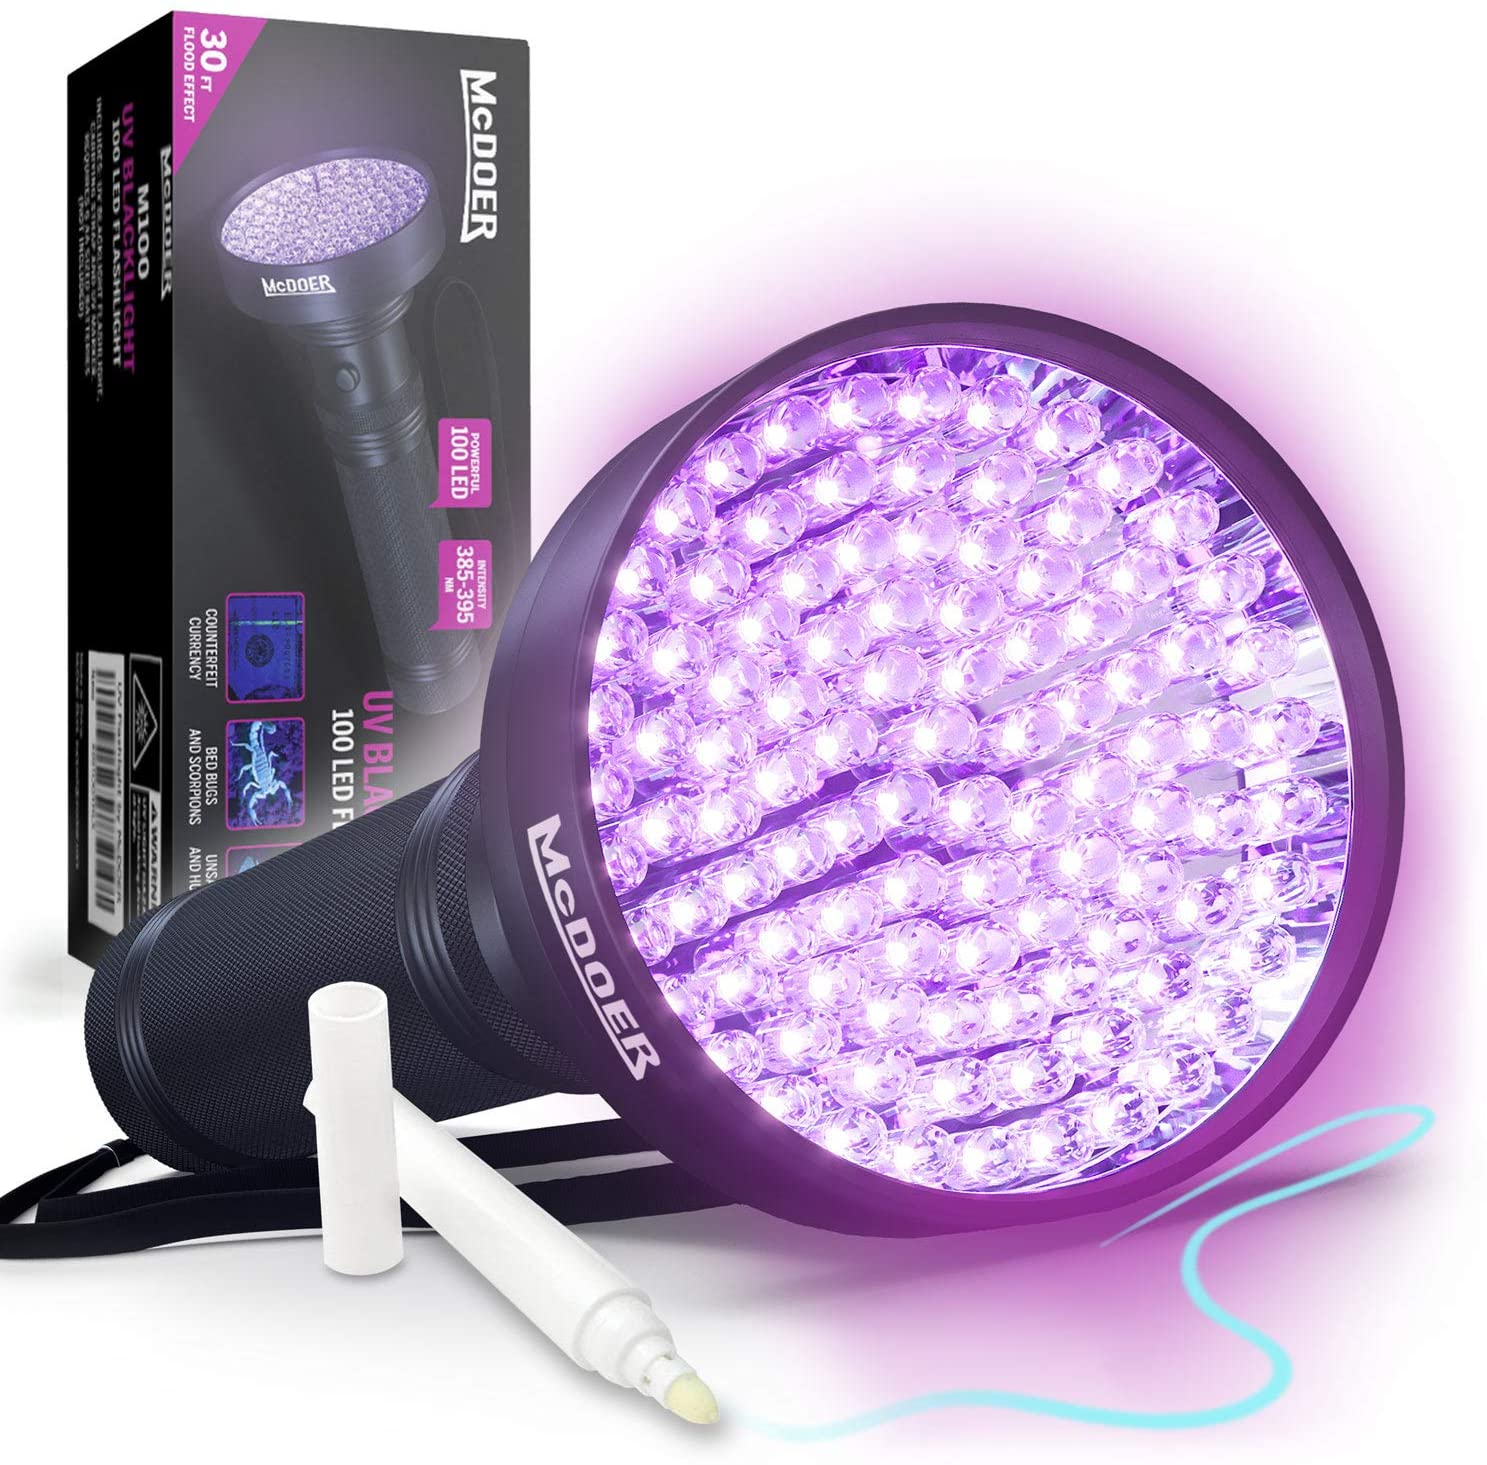 McDOER Blacklight Flashlight UV 100 LED with Ultraviolet Ink Marker for Urine Detection, Finding Scorpions, and Dog & Cat Pee - 18 Watt, 385-395nm